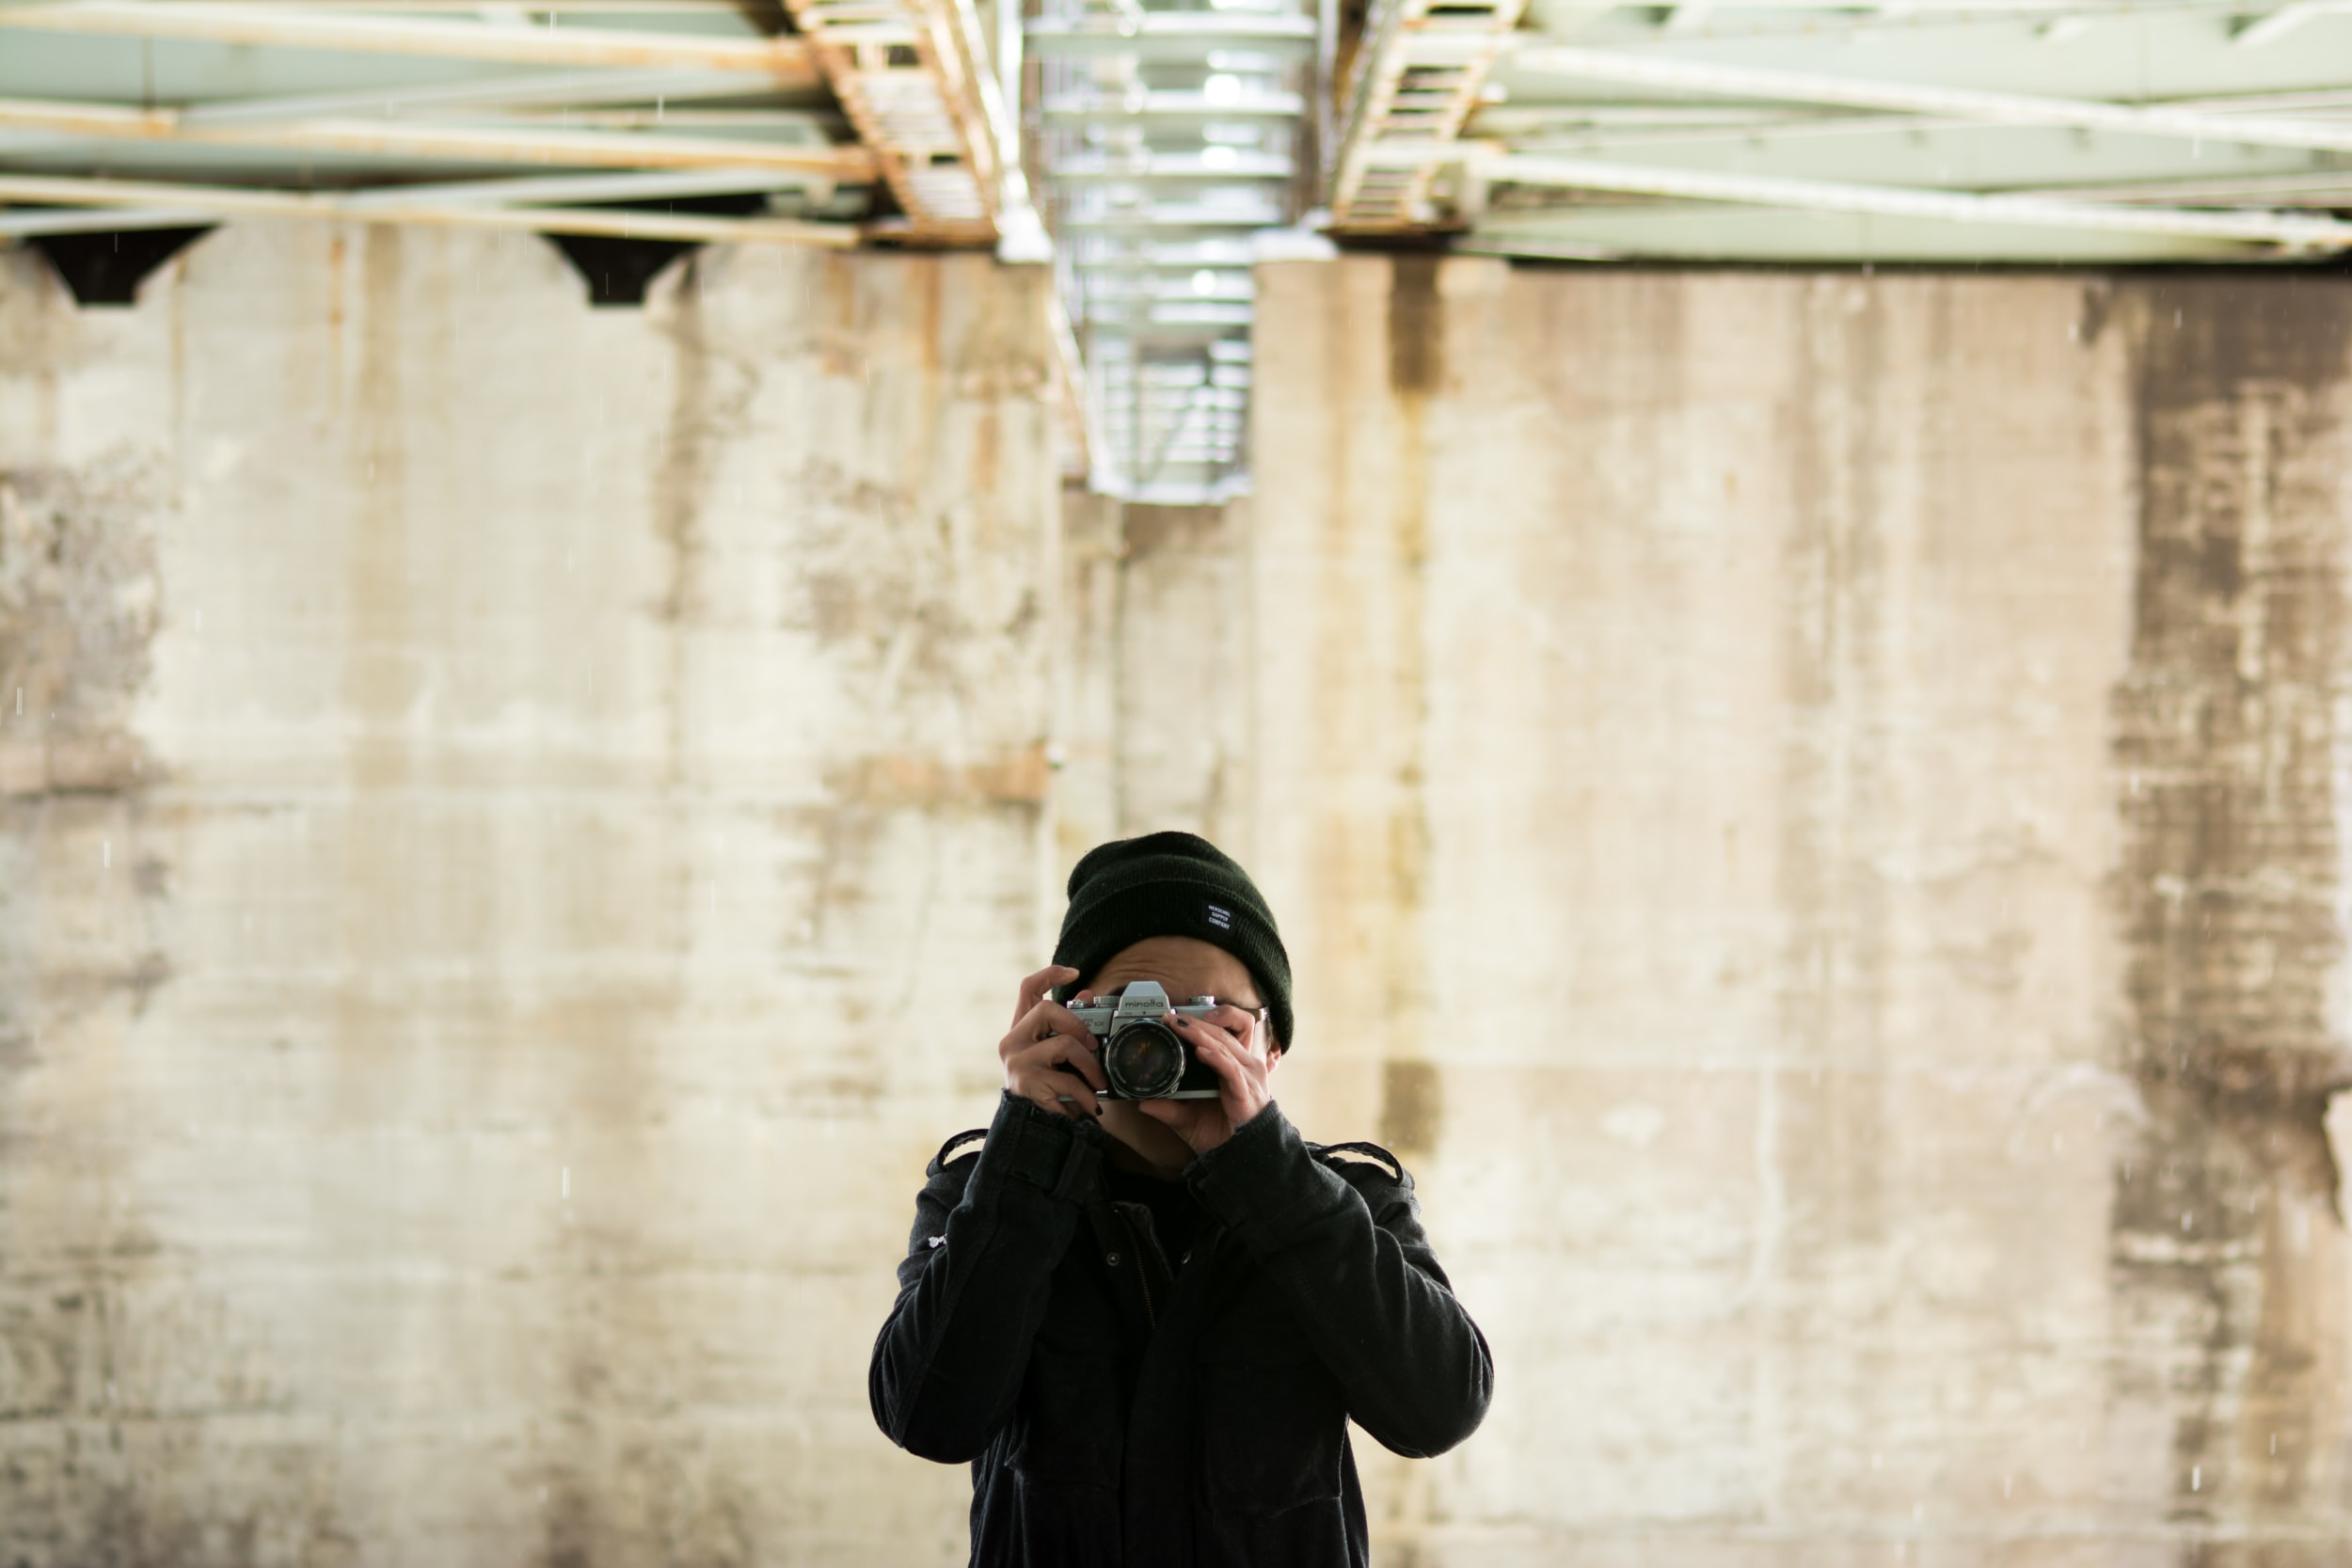 A photographer in a black knit cap points his camera at the person taking the picture